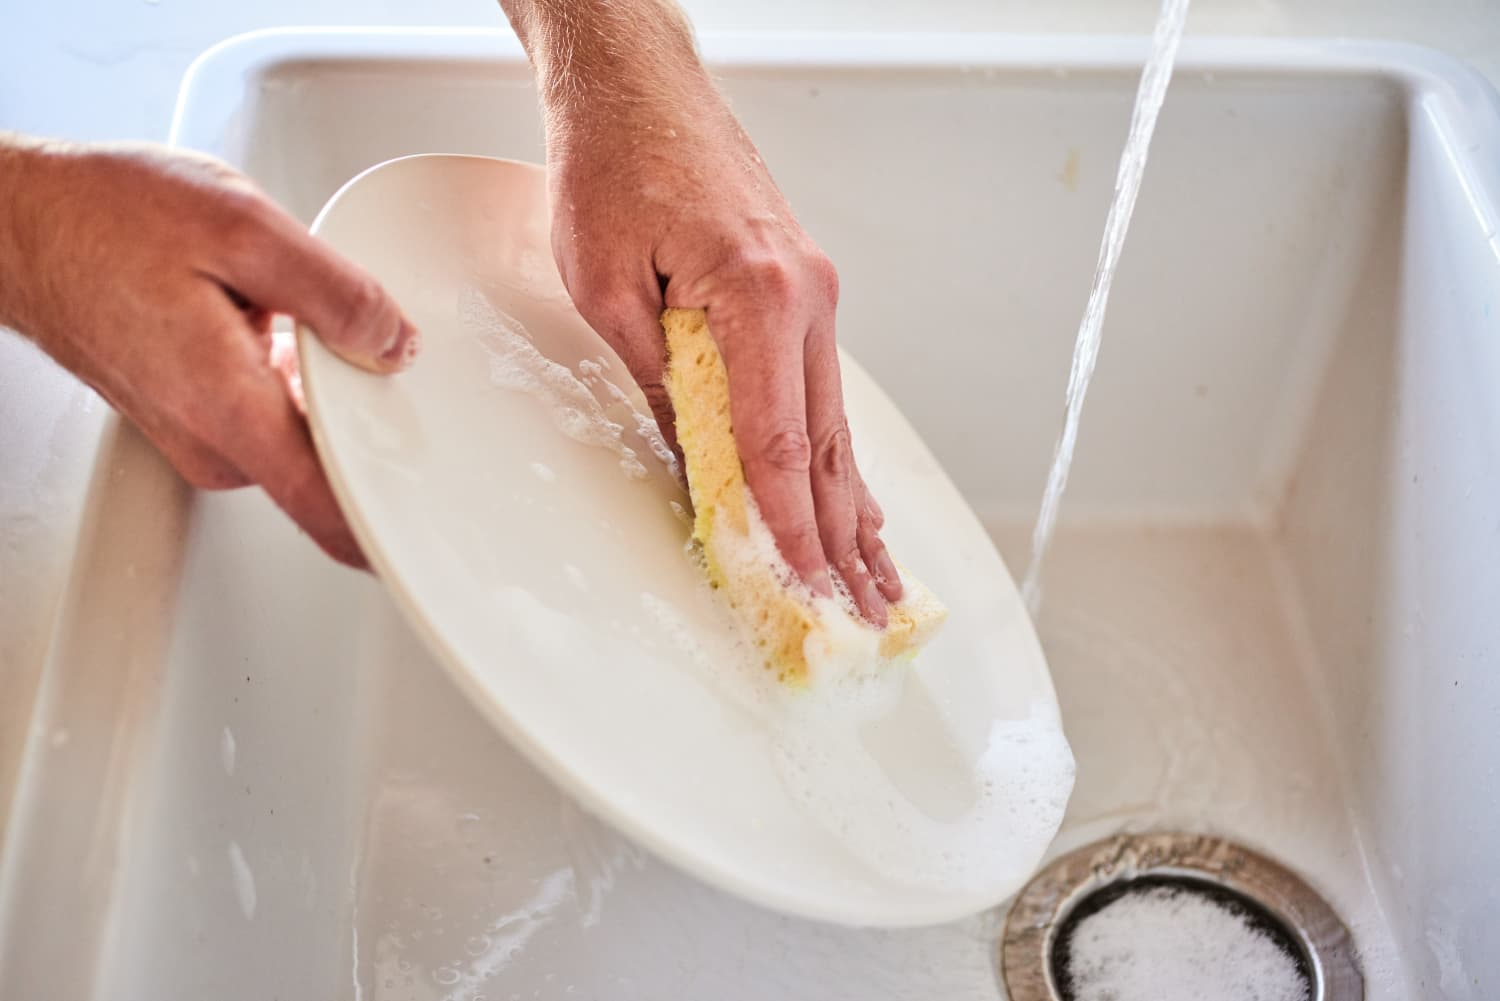 The Free, Easy Way to Make Kitchen Sponges Less Gross